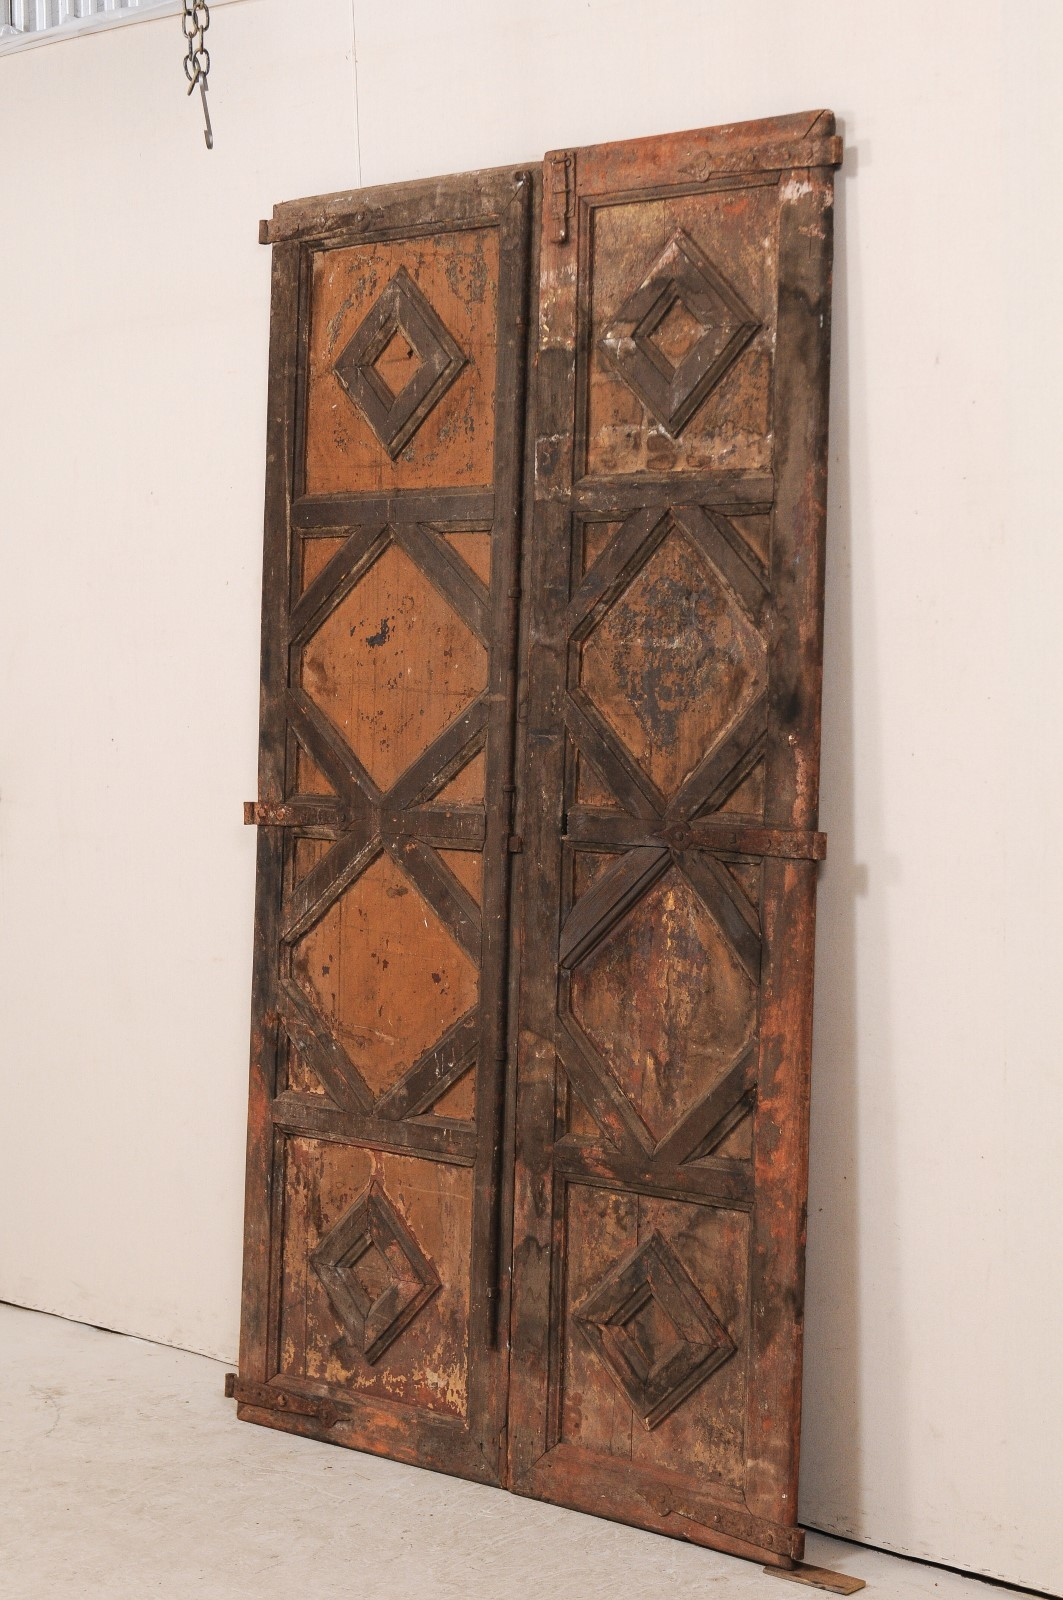 Accessories-1639 Accessories-1639 ... - Pair 18th C. Spanish Doors 1639 A. Tyner Antiques